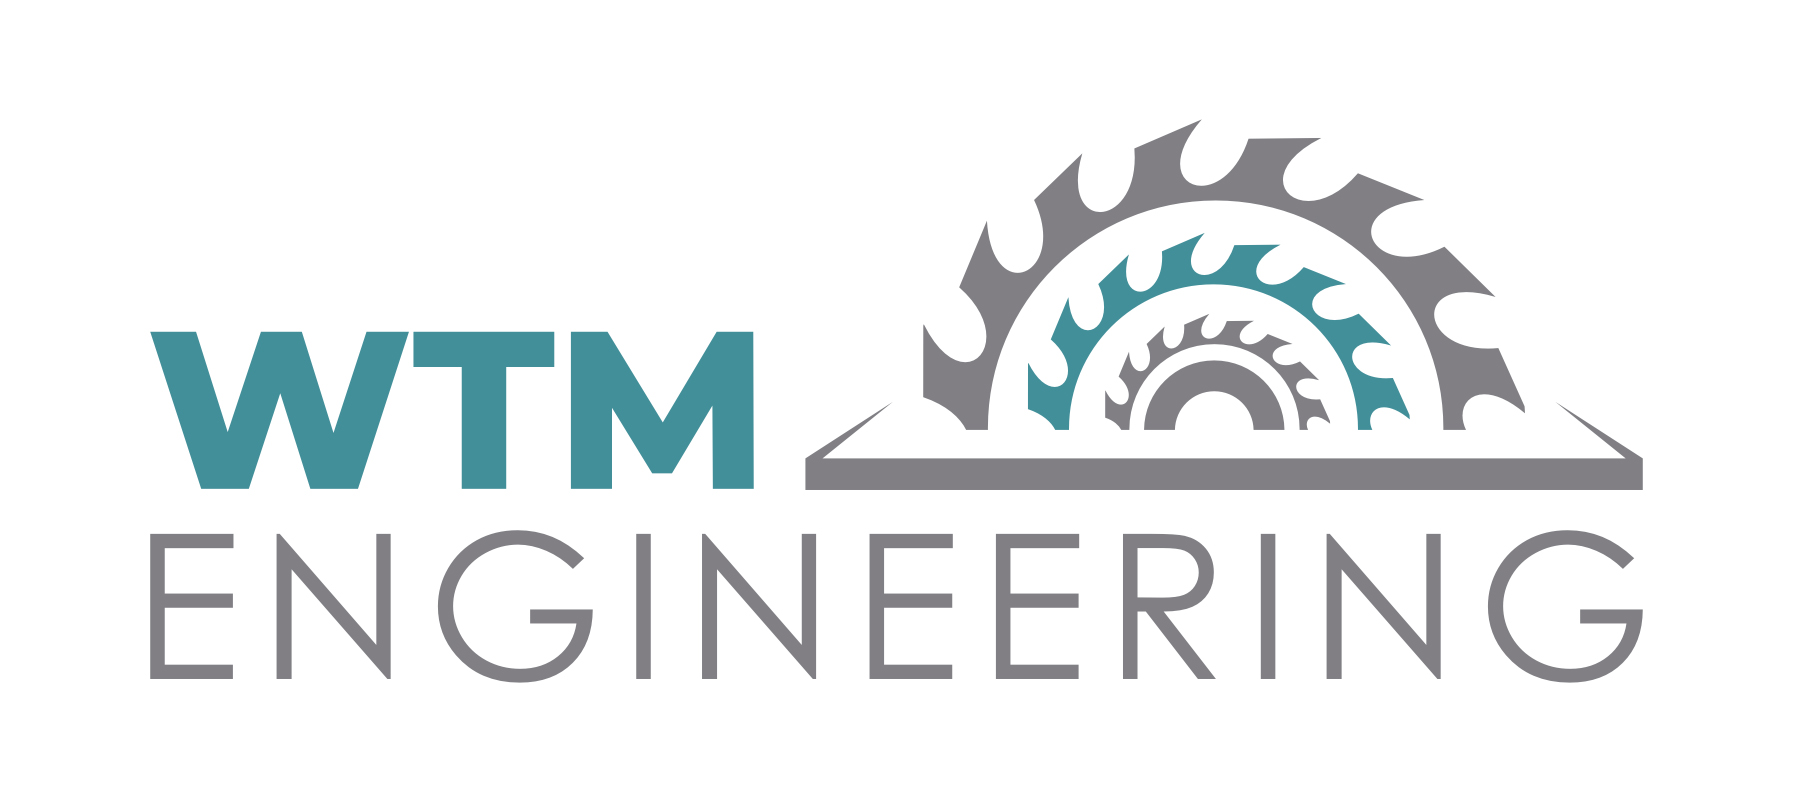 WTM Engineering